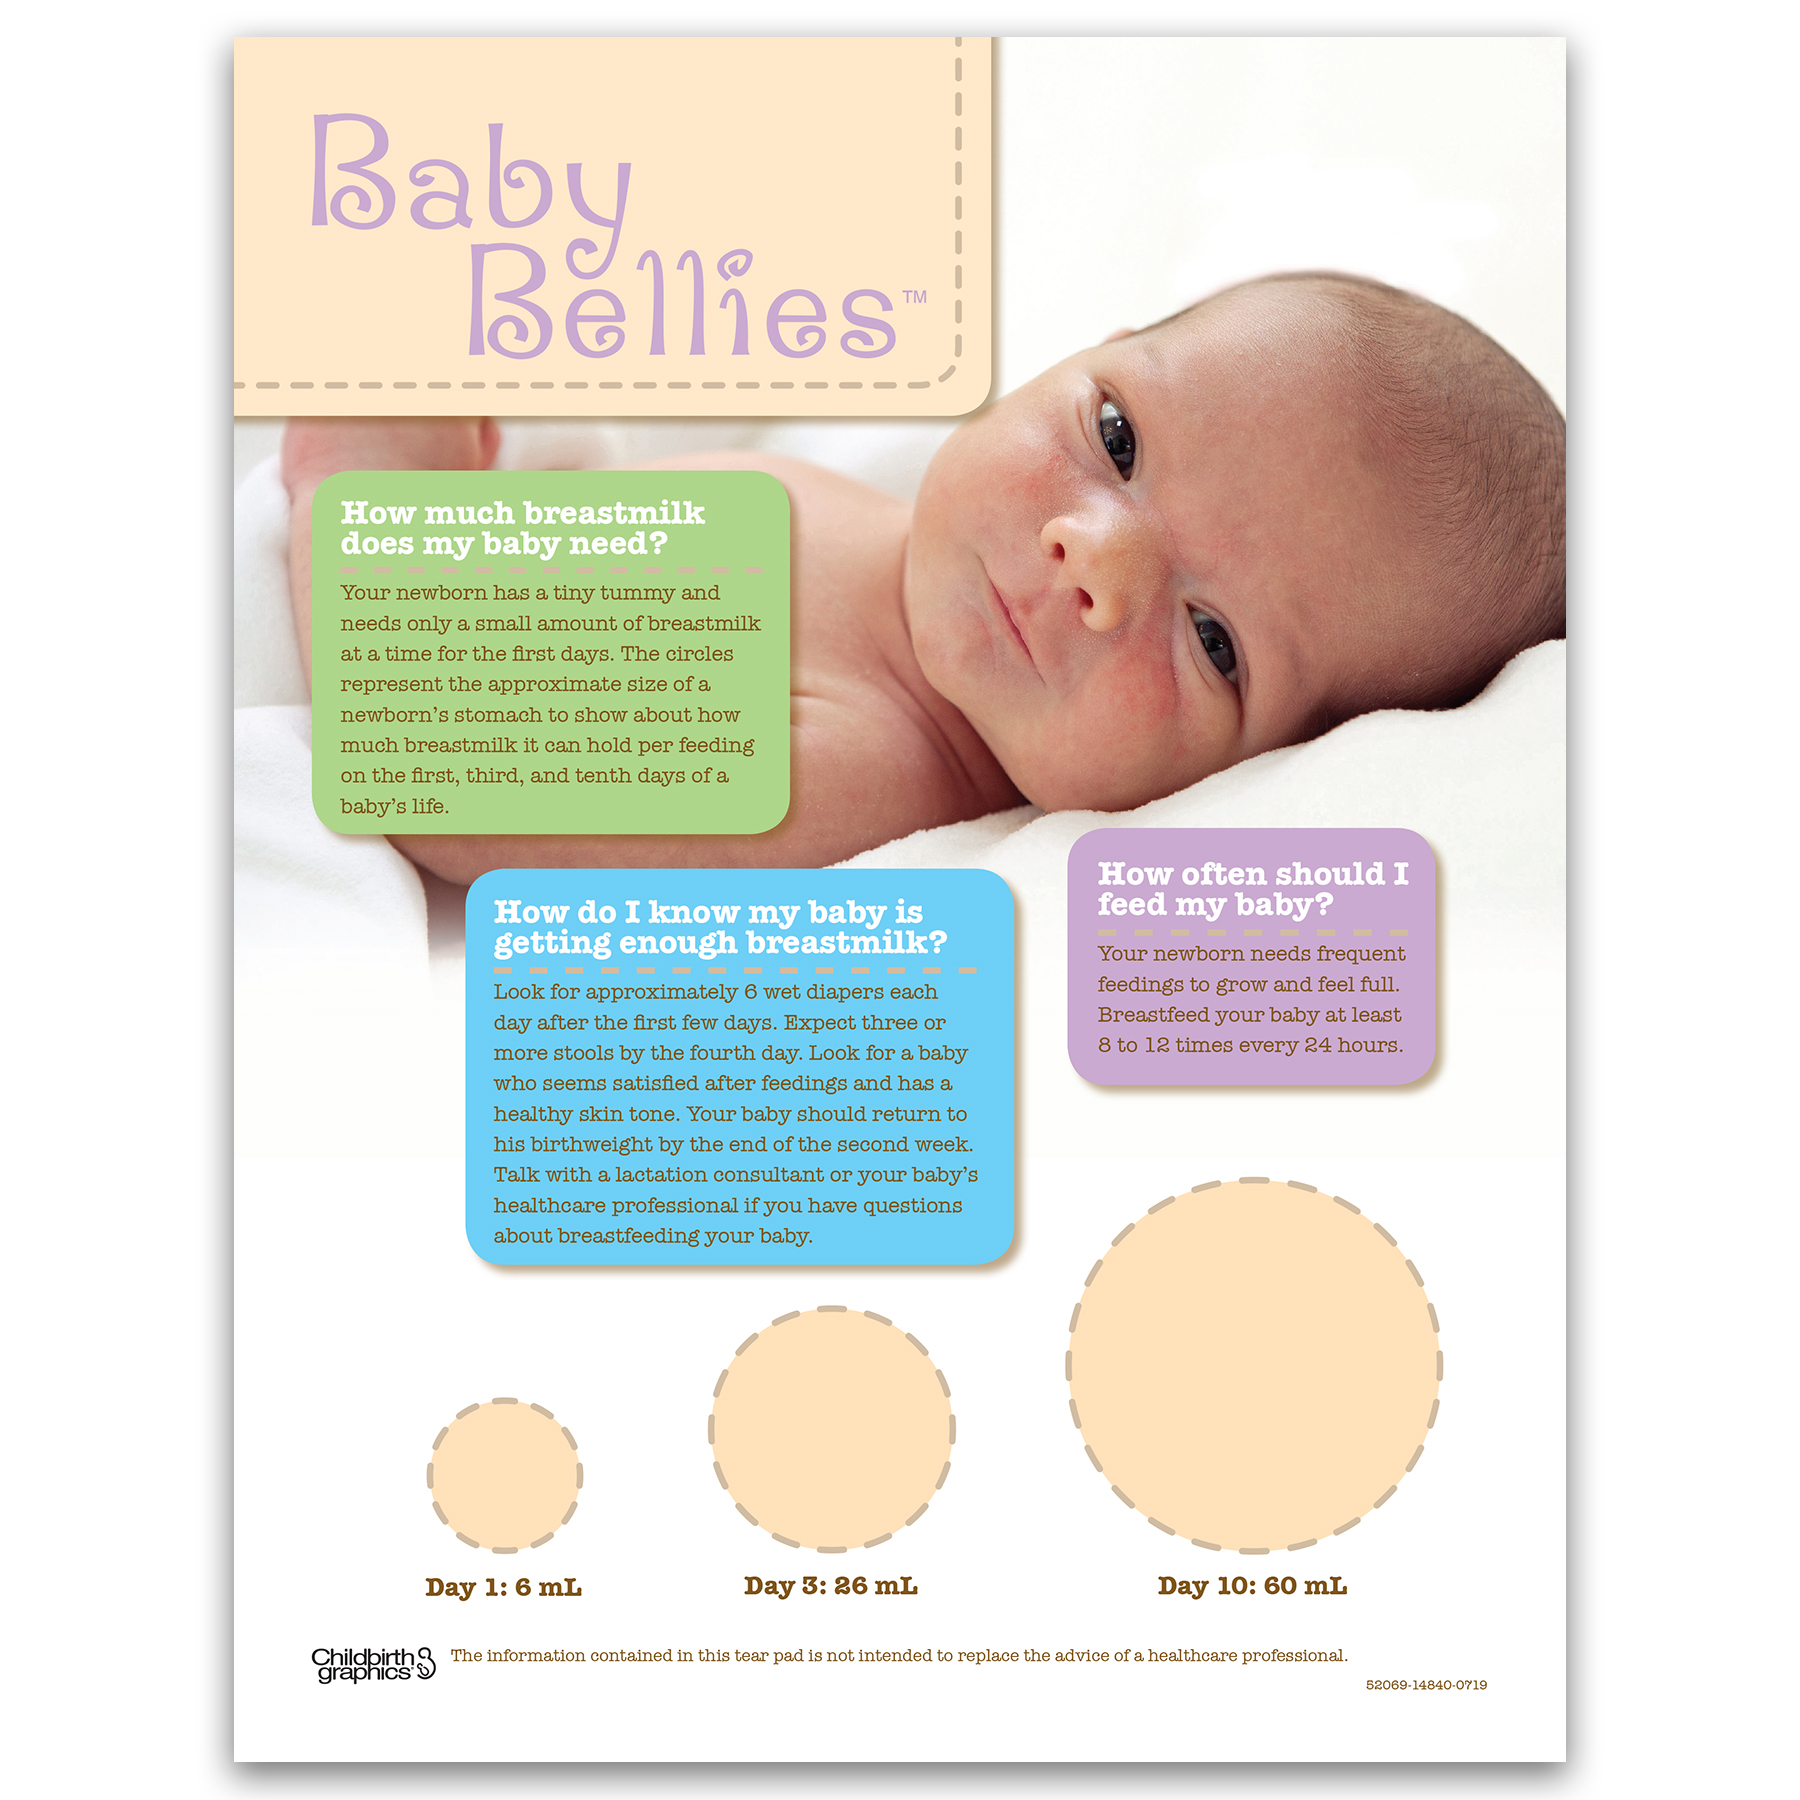 Baby Bellies Tear Pad front, 3 circles 6 mL 26 mL 60mL 3 colored boxes questions answer, Childbirth Graphics, 52069